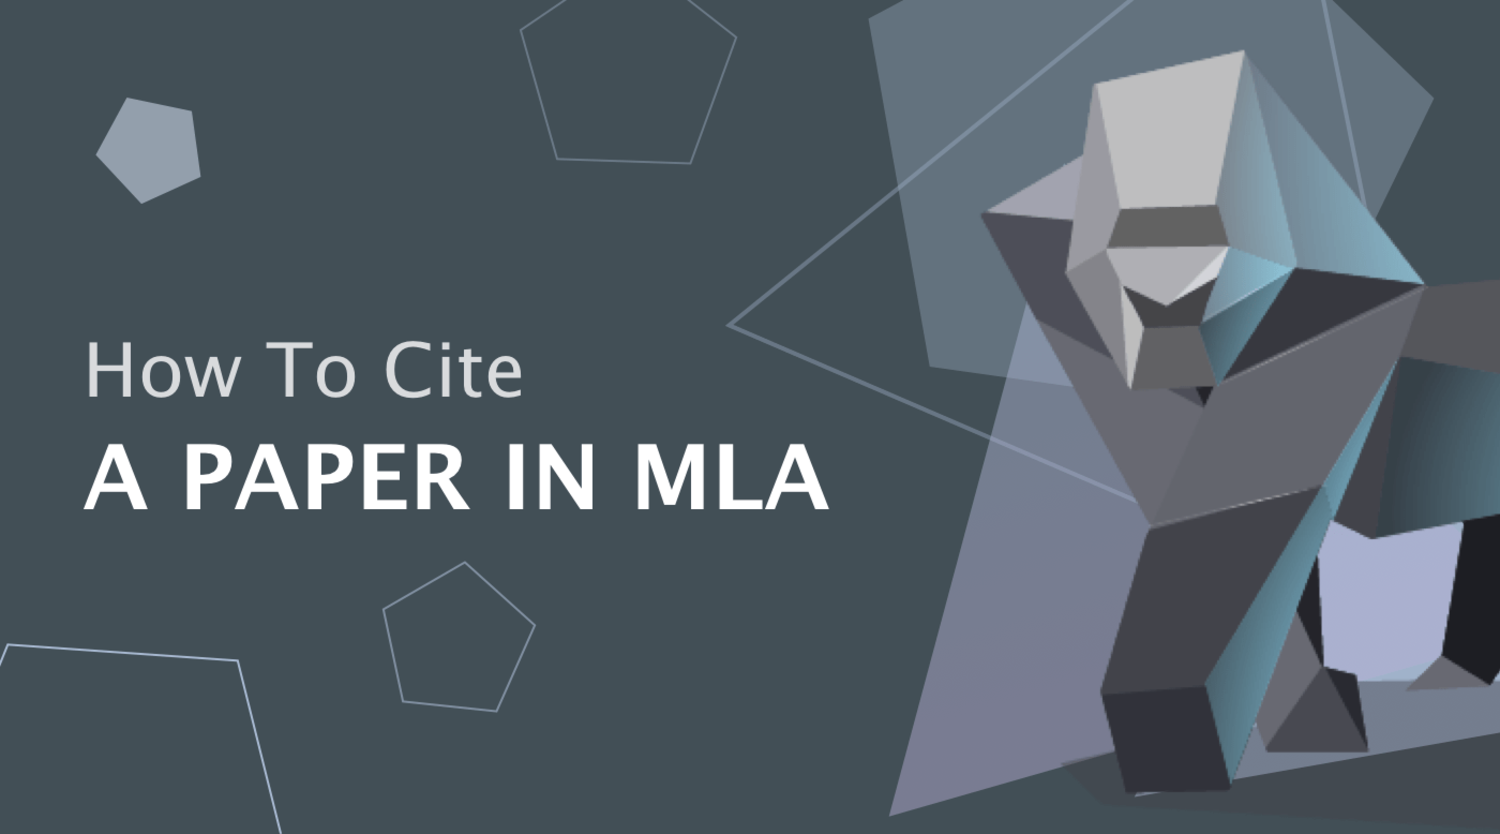 How to Cite a Paper in MLA